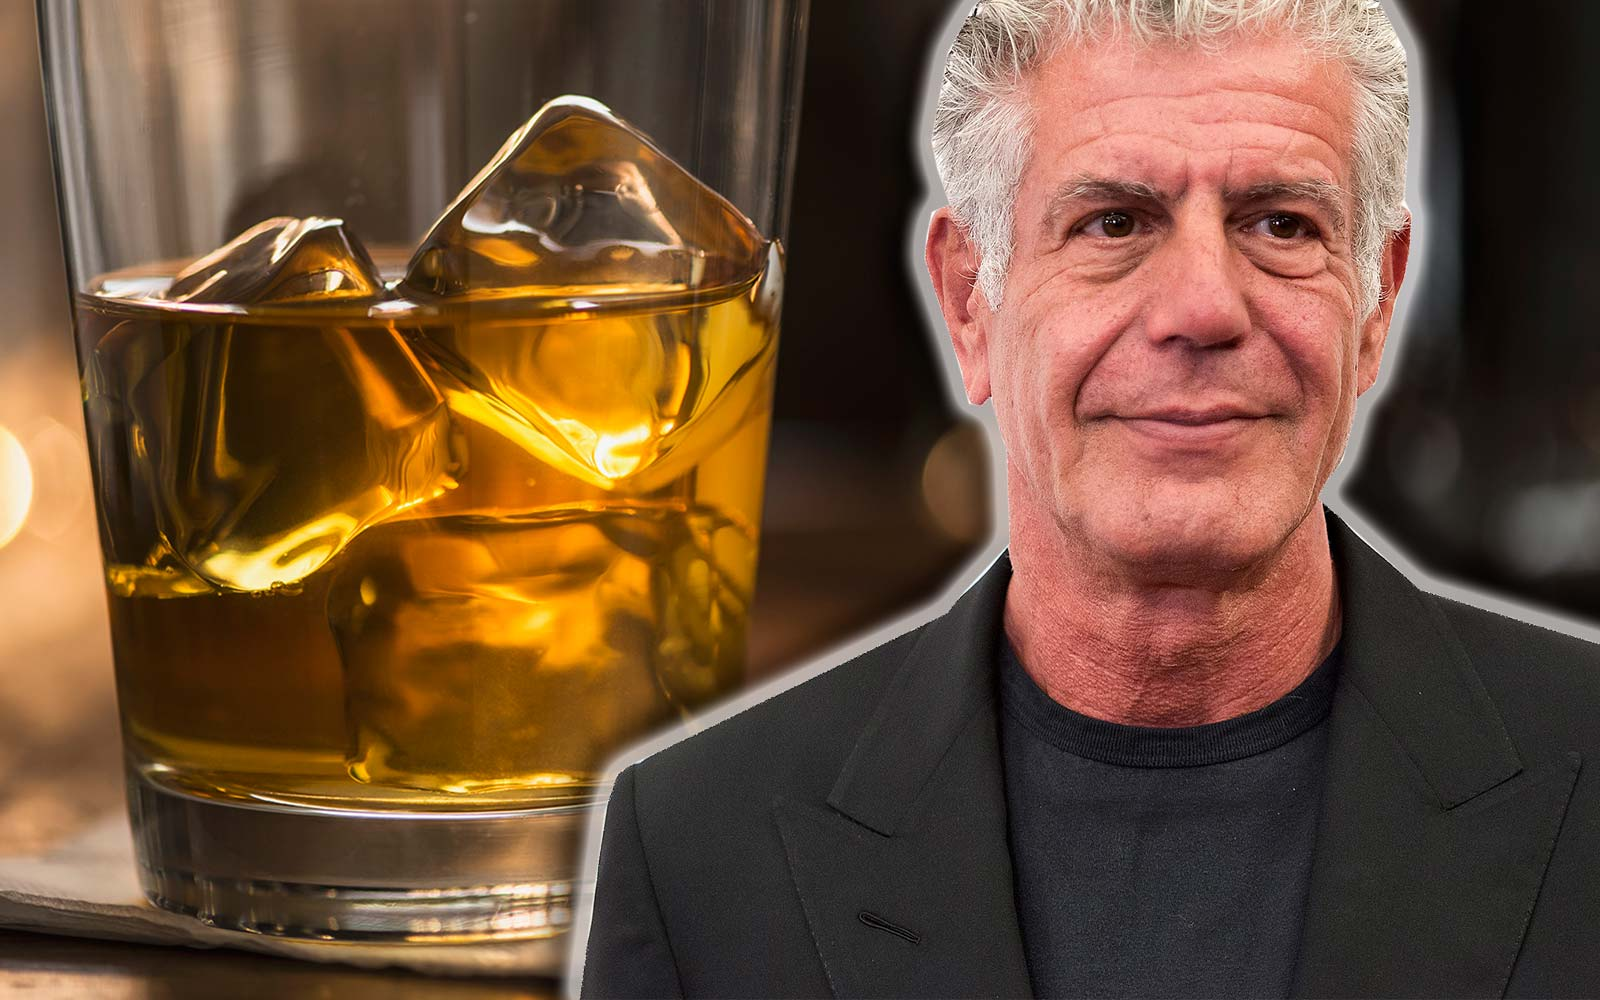 Anthony Bourdain Iced Whiskey Scotch Drink